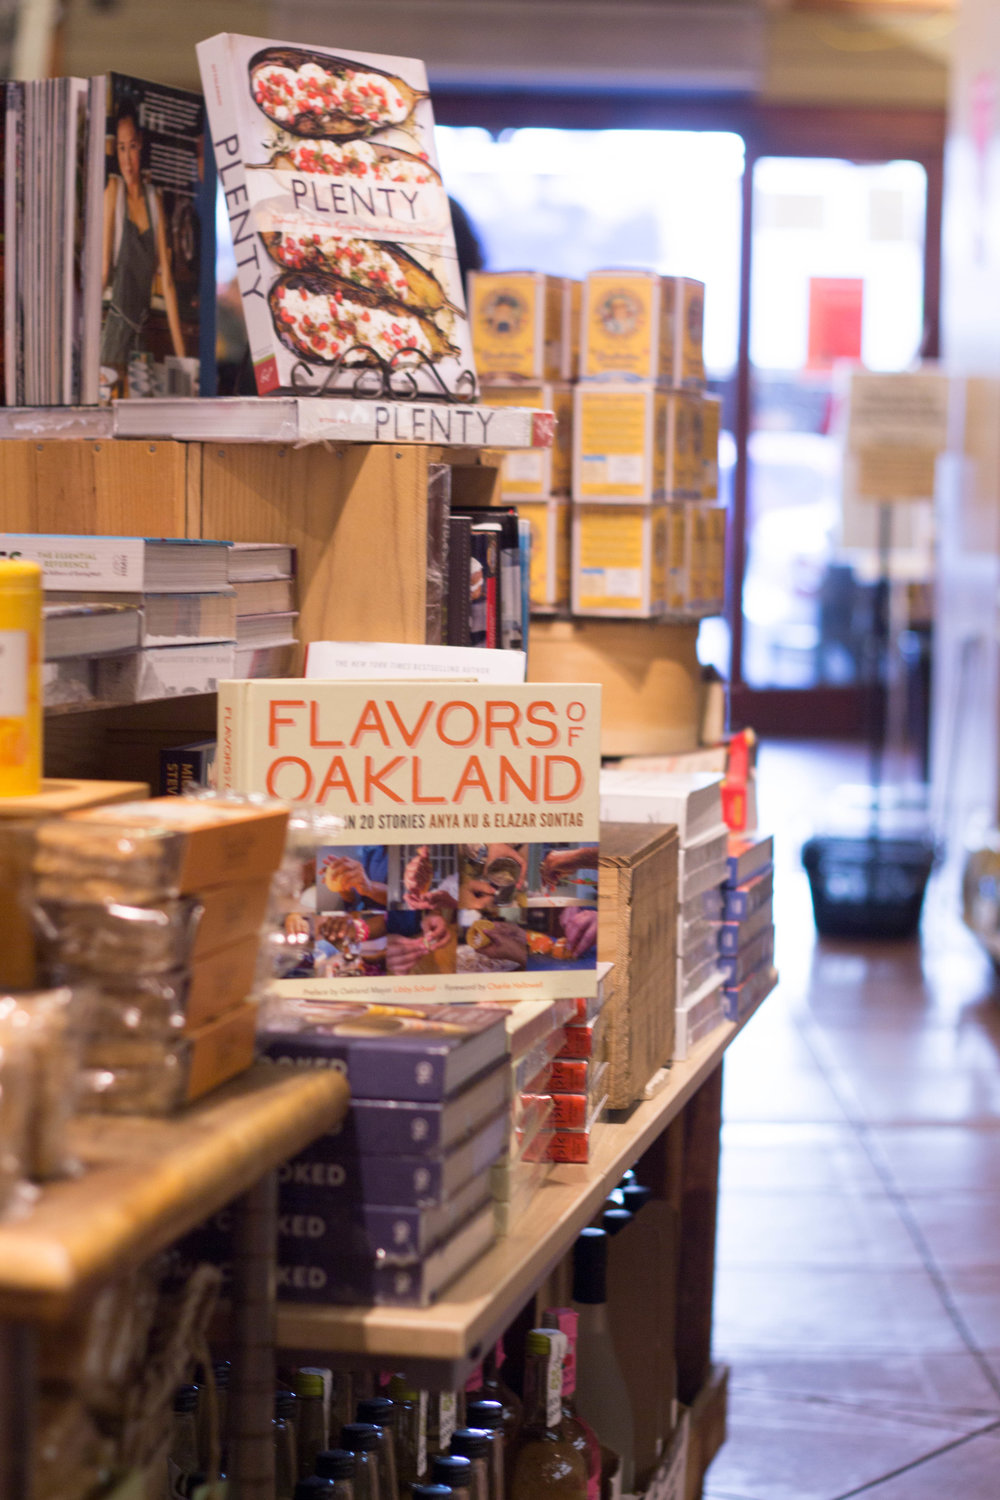 May 2016 - My book, Flavors of Oakland, was published and received tremendous critical acclaim. It was featured by several local news outlets, was included in the Oakland Museum of California's